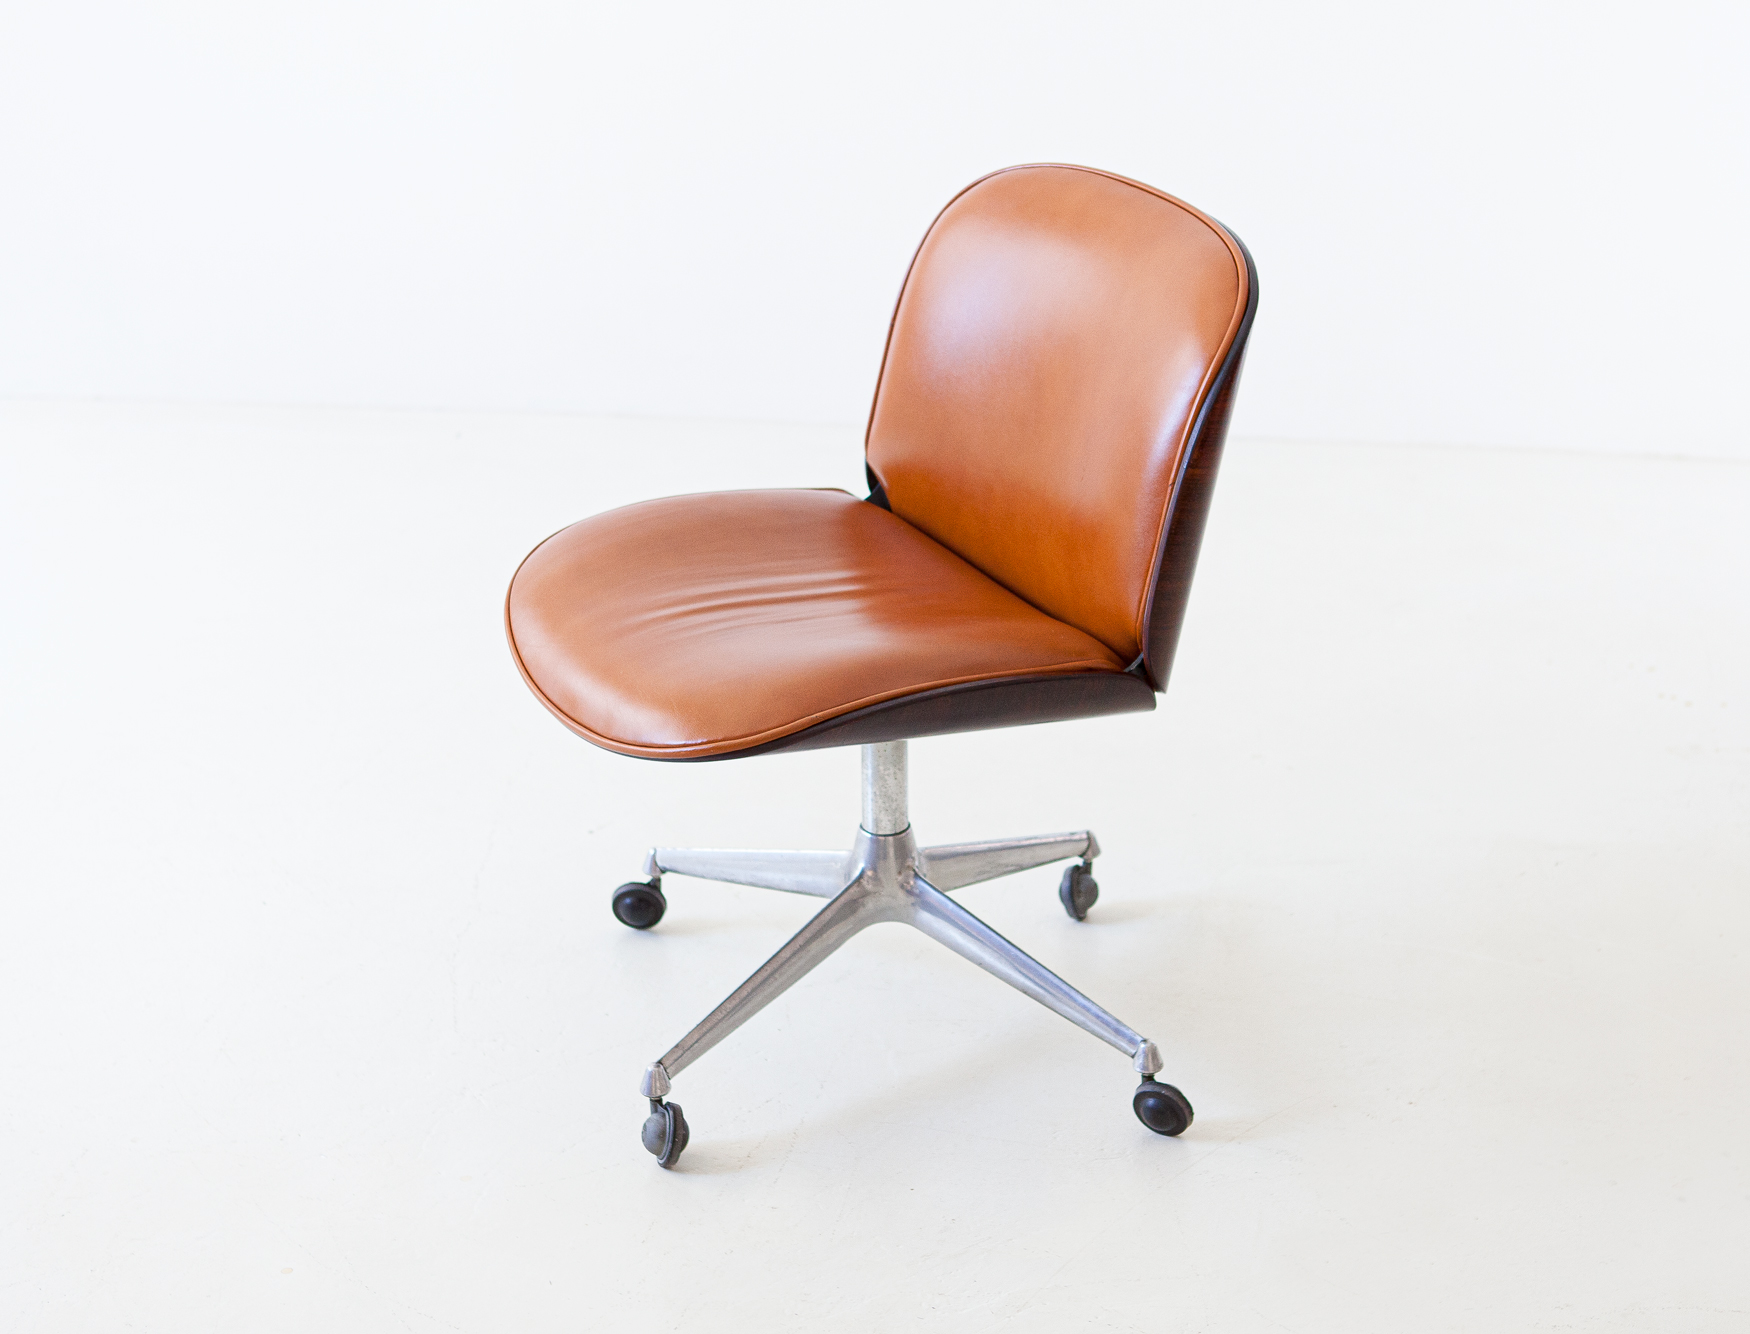 1950s-rosewood-and-cognac-leather-swivel-chair-by-ico-parisi-for-mim-4-se328a